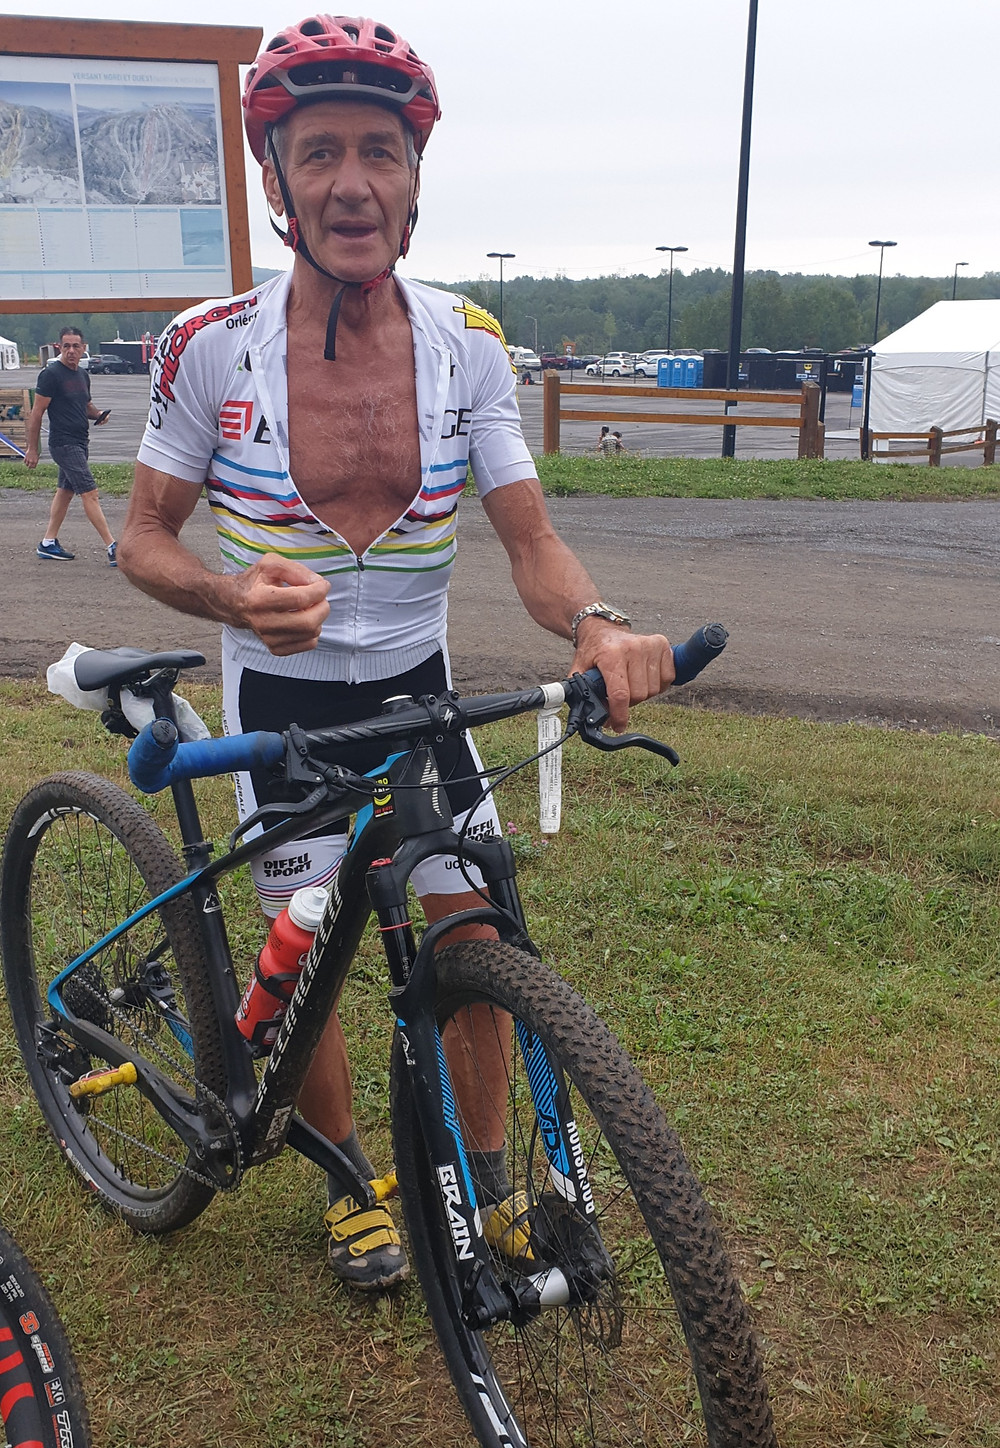 This is Christian Juilipat, who I have had the honour of meeting at three UCI Masters Mountain Bike World Championships.